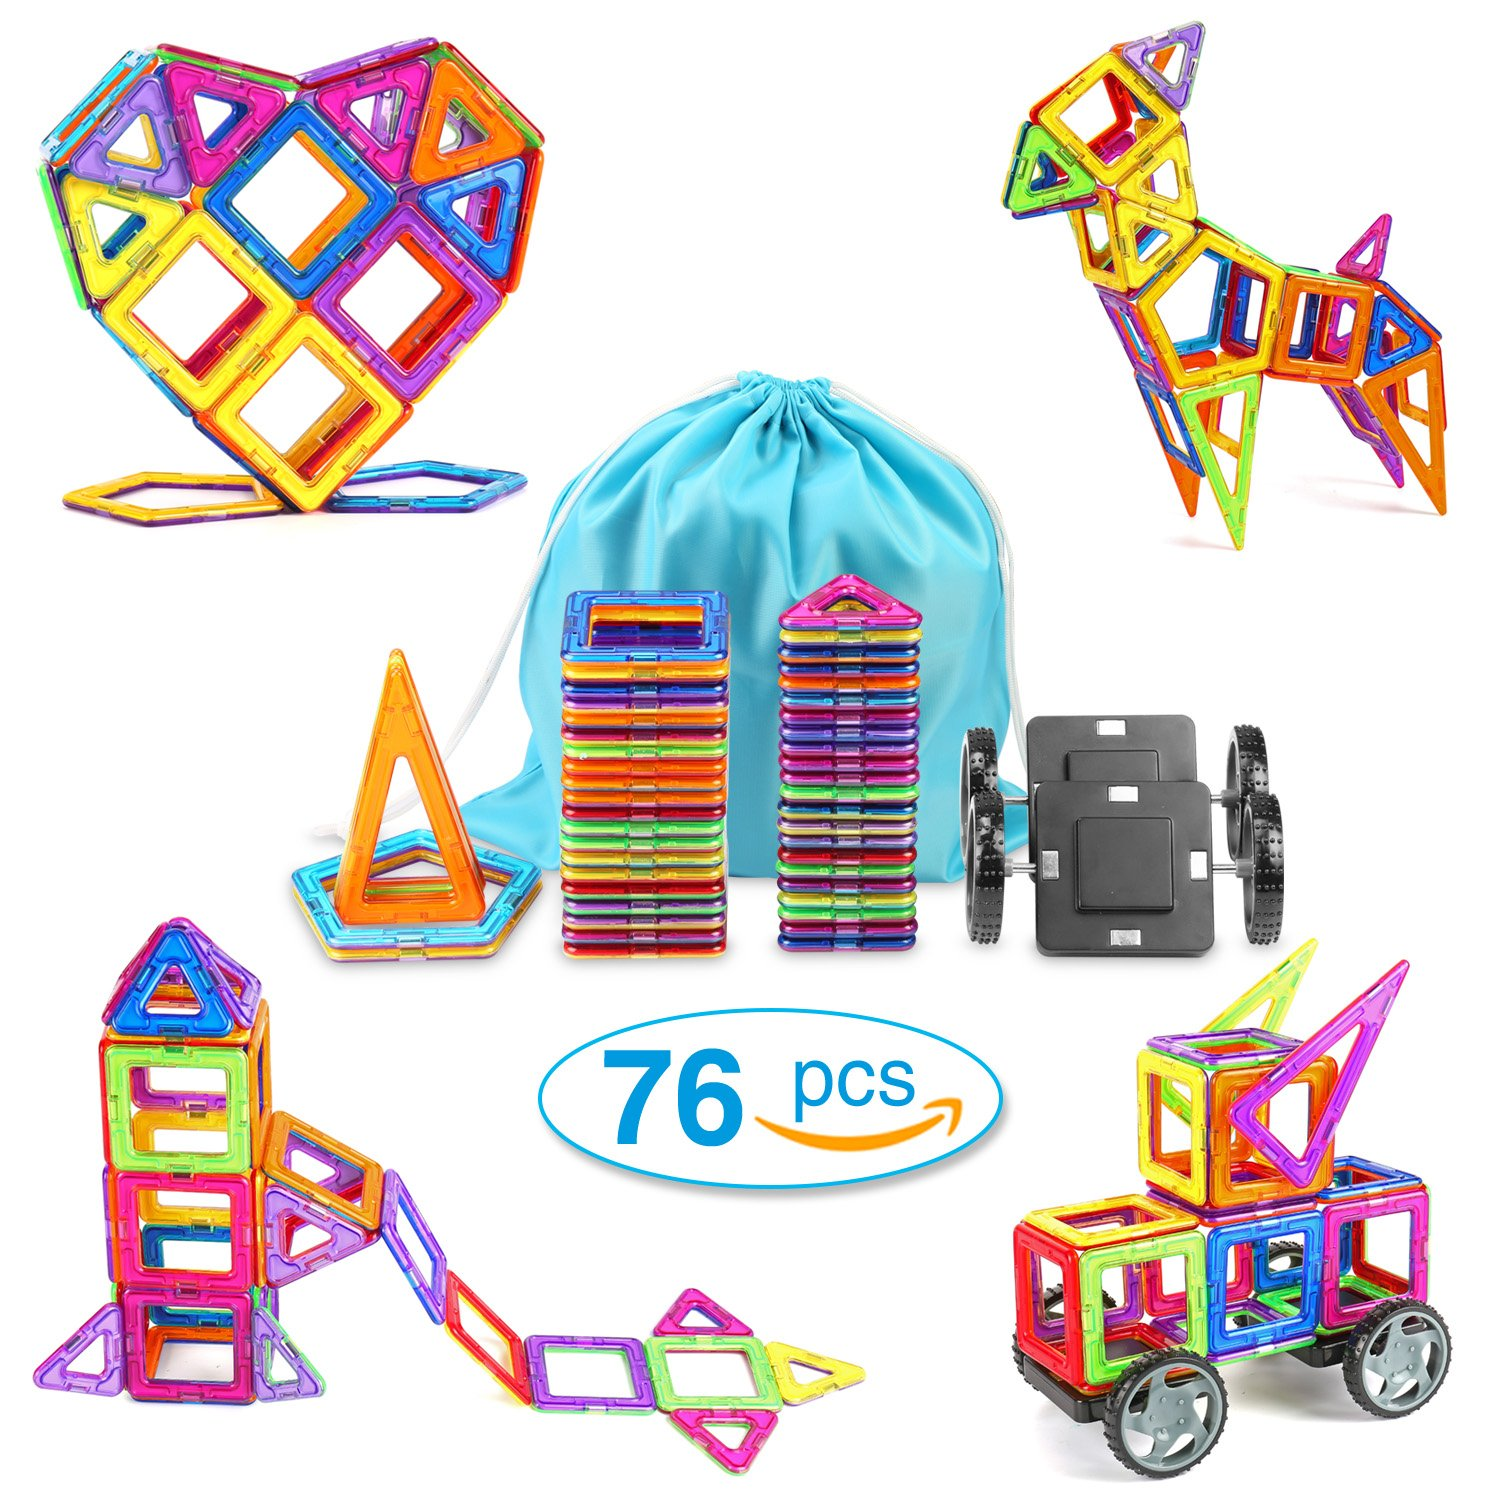 TOQIBO Magnetic Blocks Building Set 76PCS Magnet Tiles Educational Toys For Kids/Toddlers/Children With Storage Bag